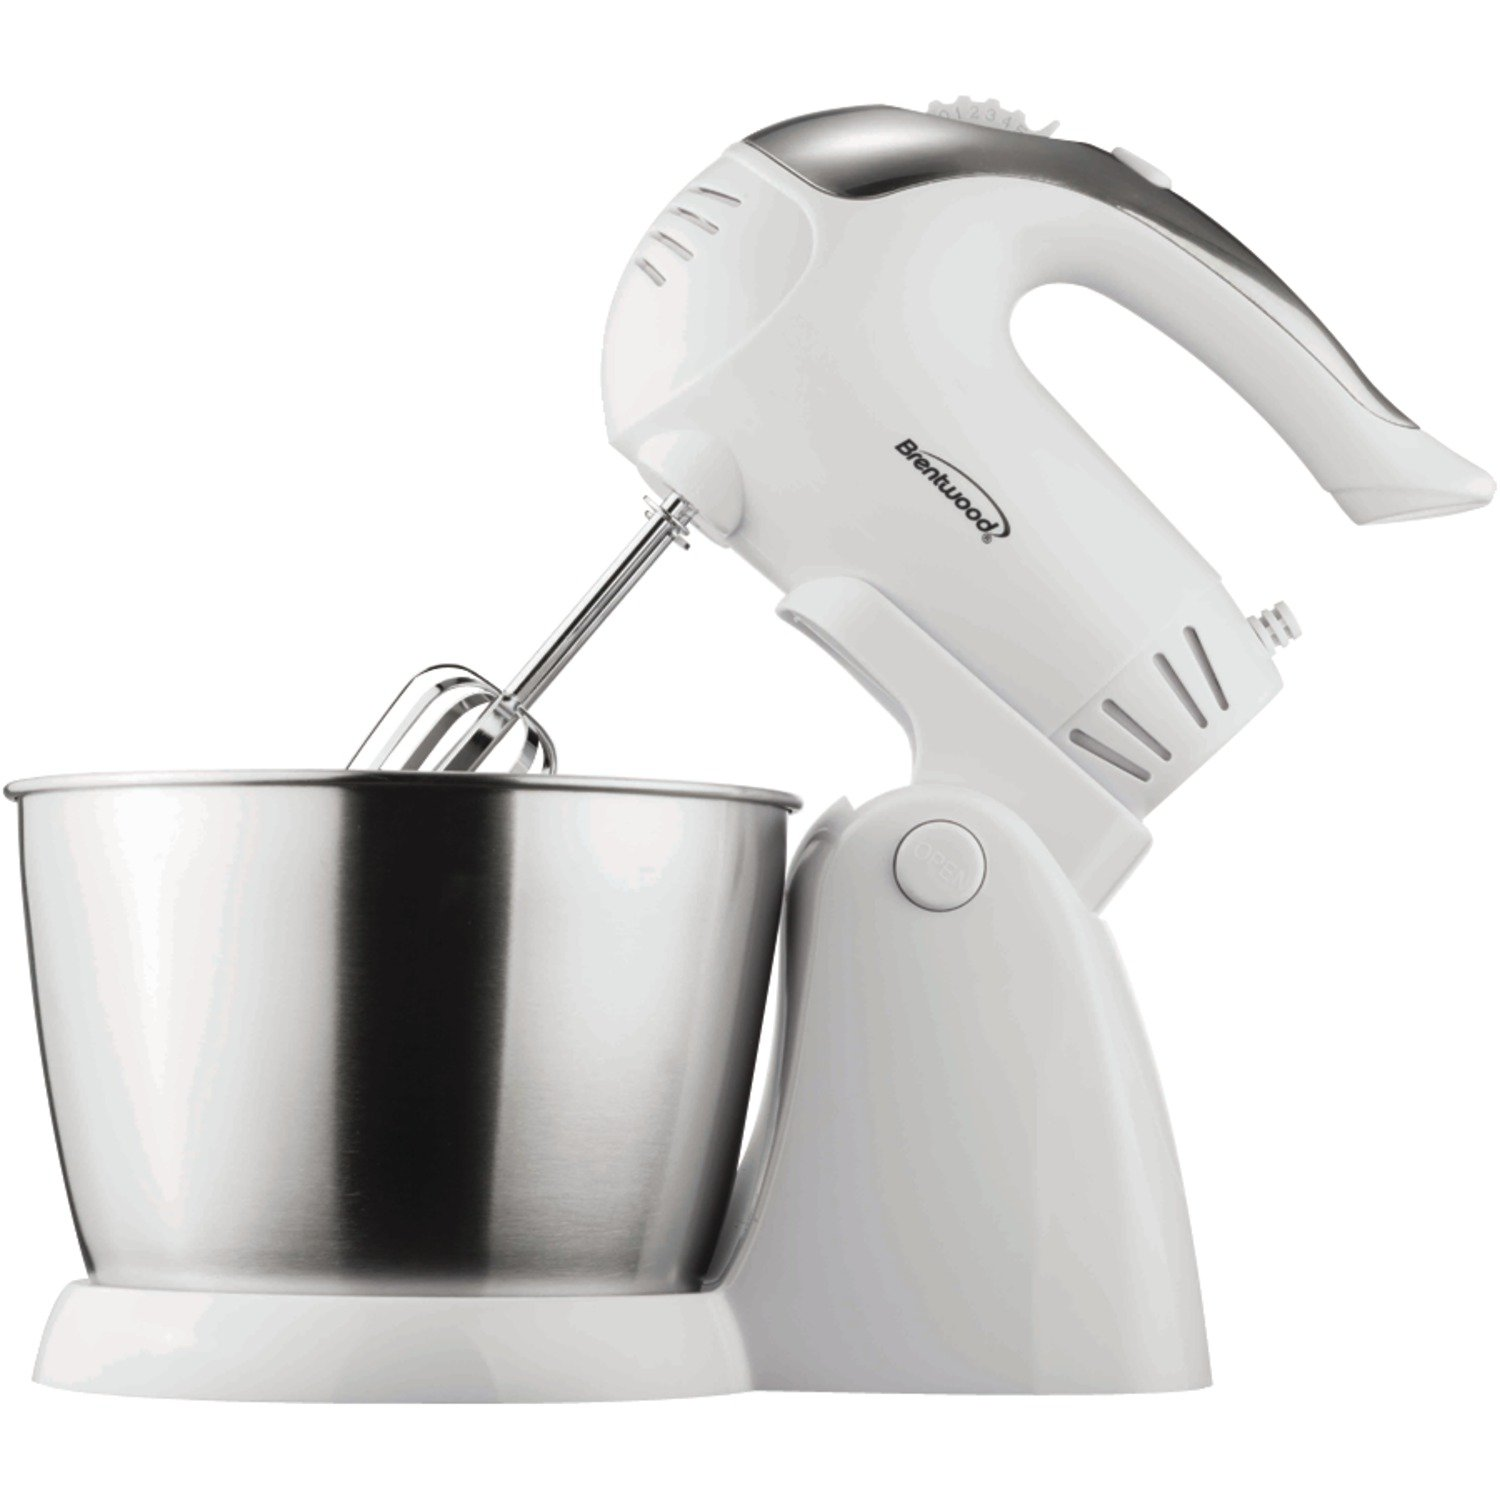 brentwood appliances sm 1152 stand mixer white food